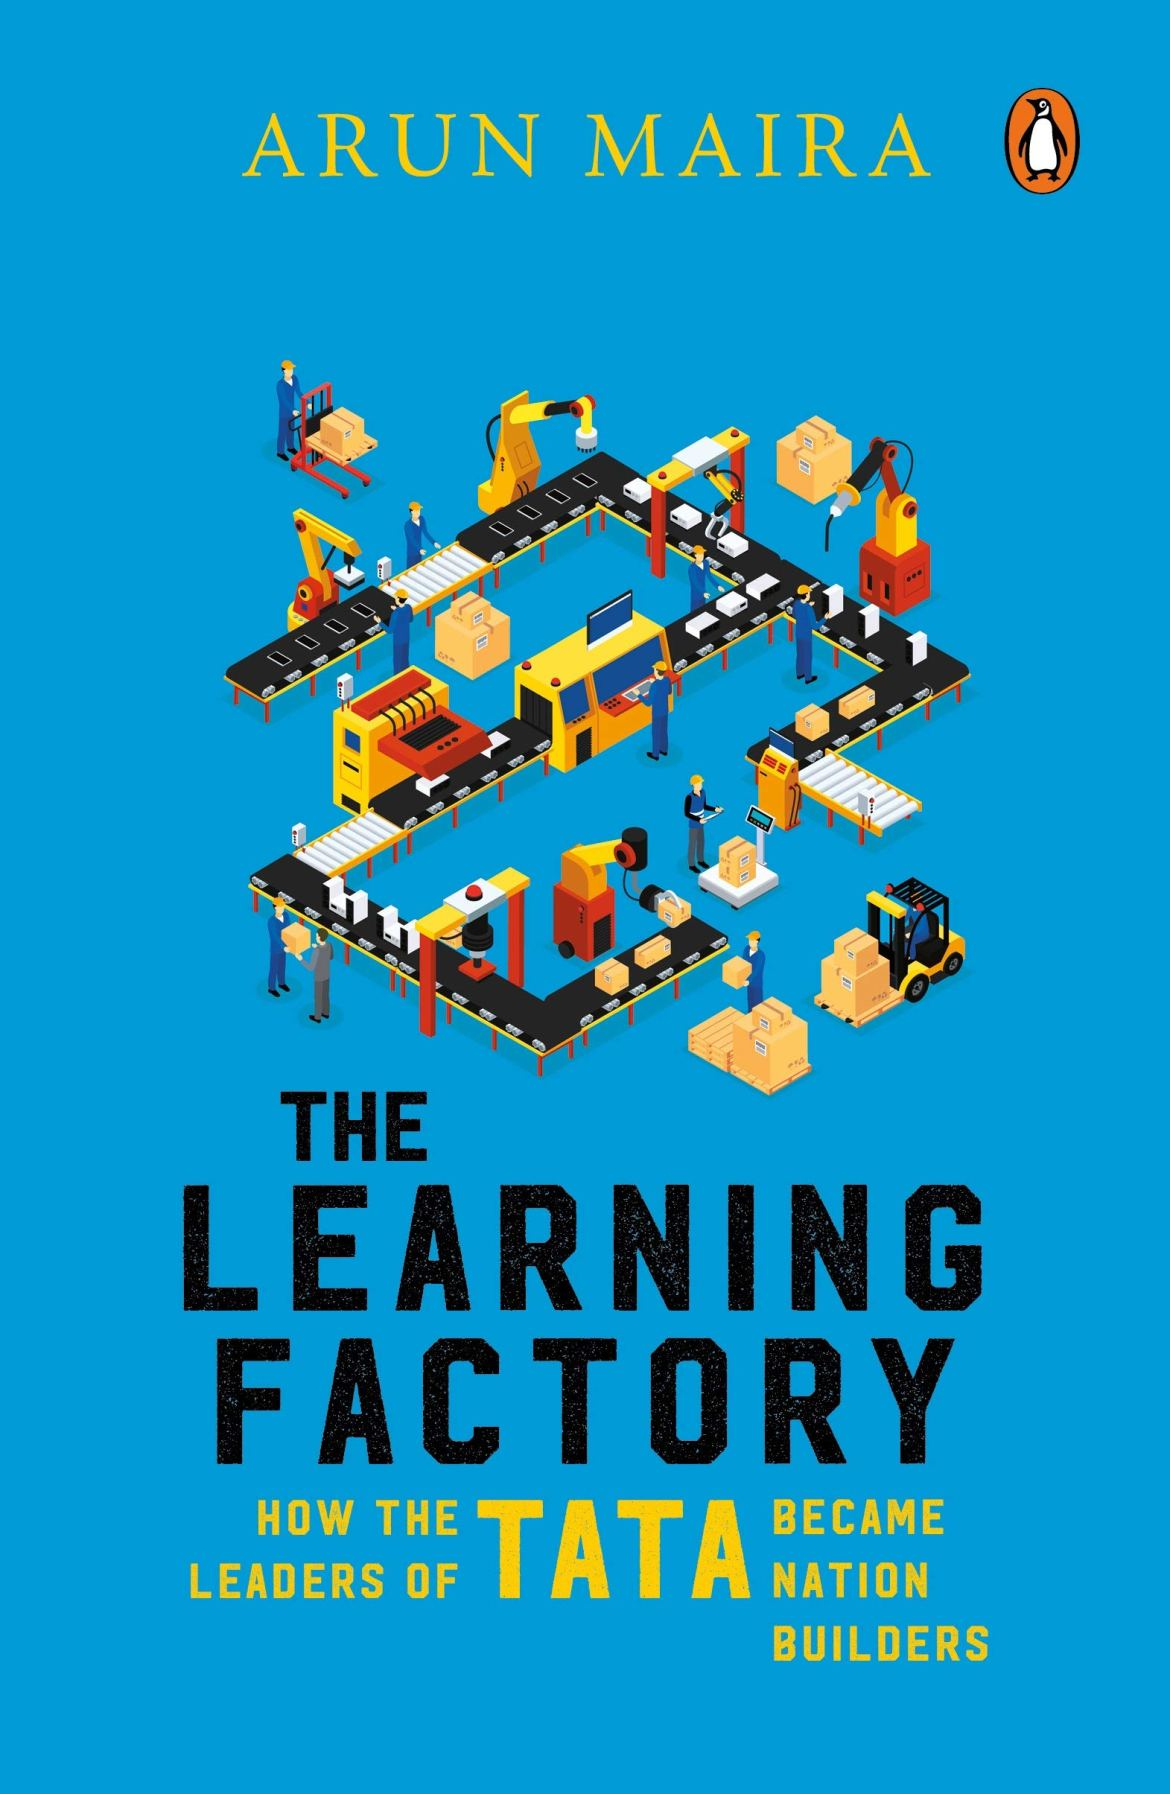 Buy The Learning Factory: How the Leaders of Tata Became Nation Builders  Book Online at Low Prices in India | The Learning Factory: How the Leaders  of Tata Became Nation Builders Reviews